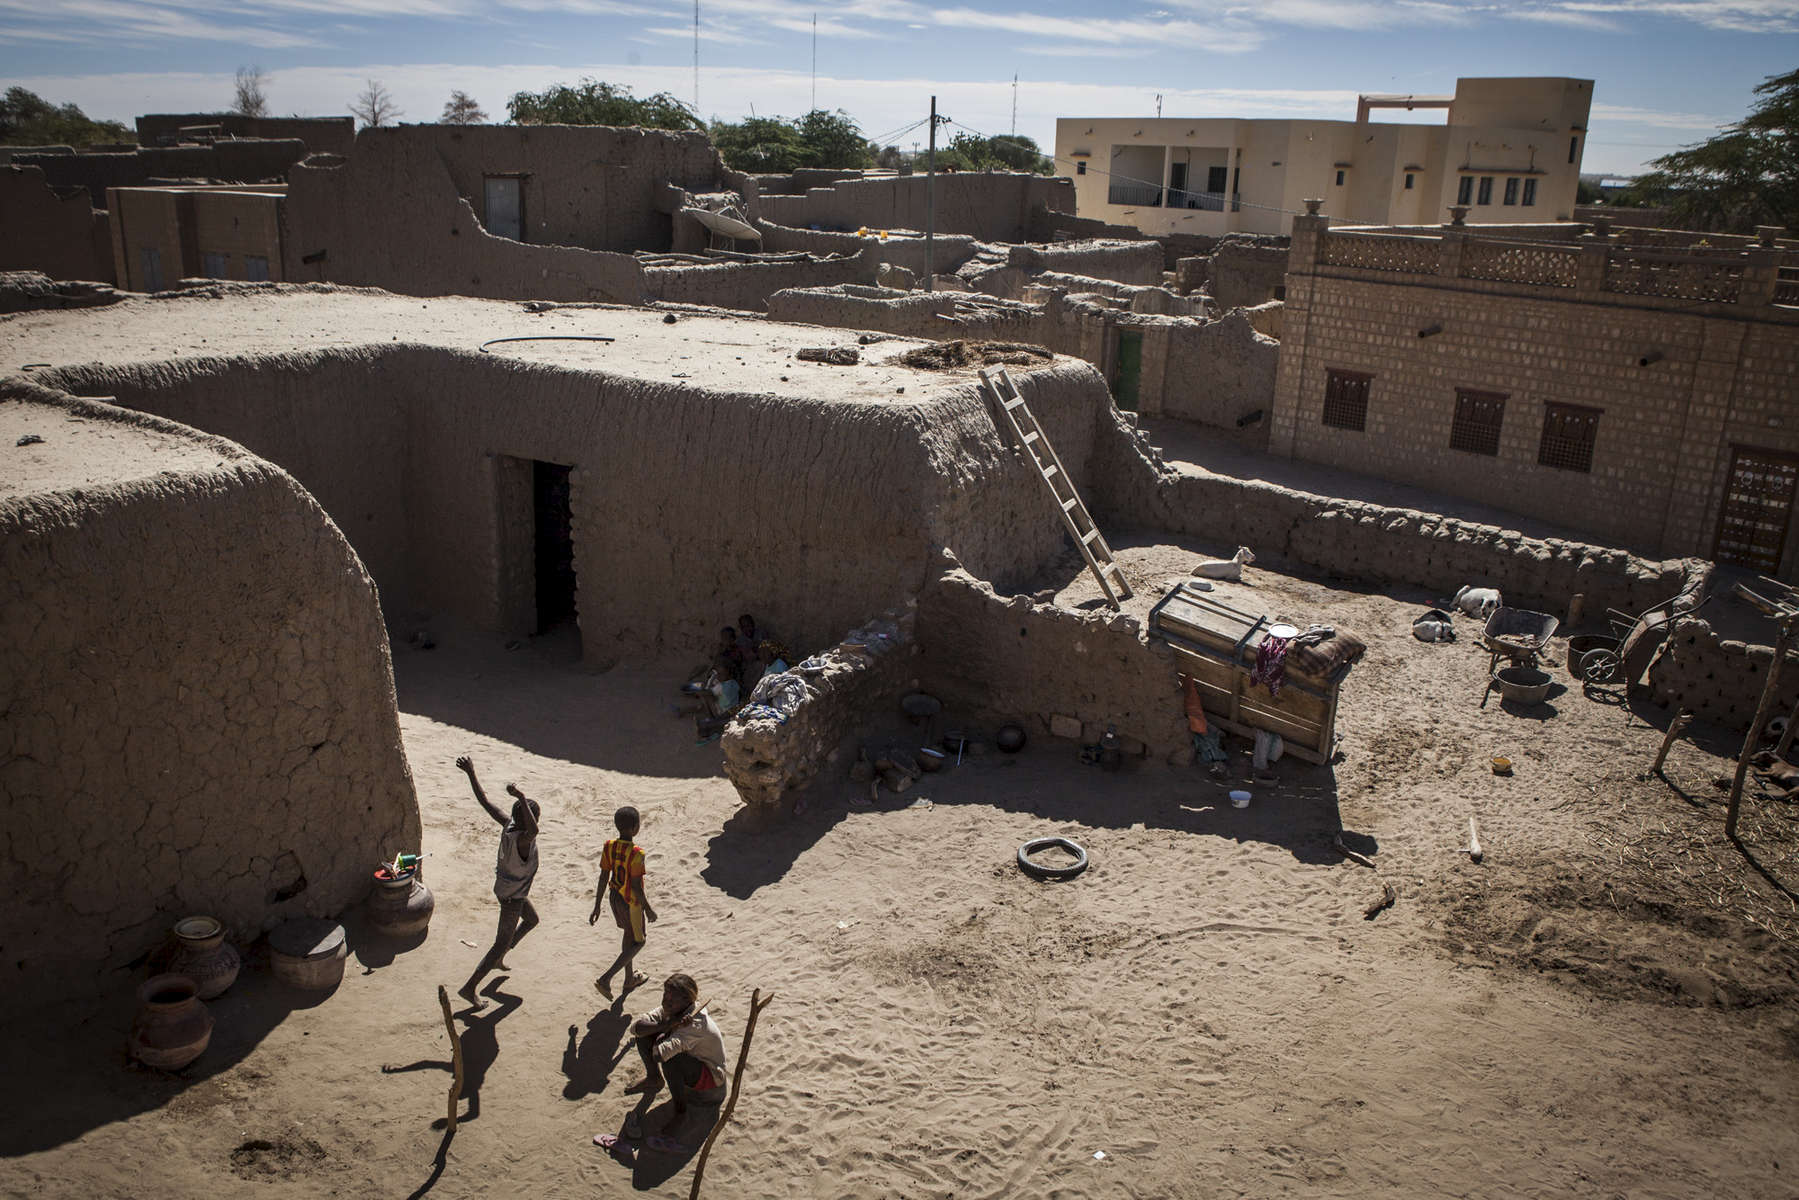 Children play in a courtyard  in Timbuktu, Mali on Wednesday, January 11, 2017.